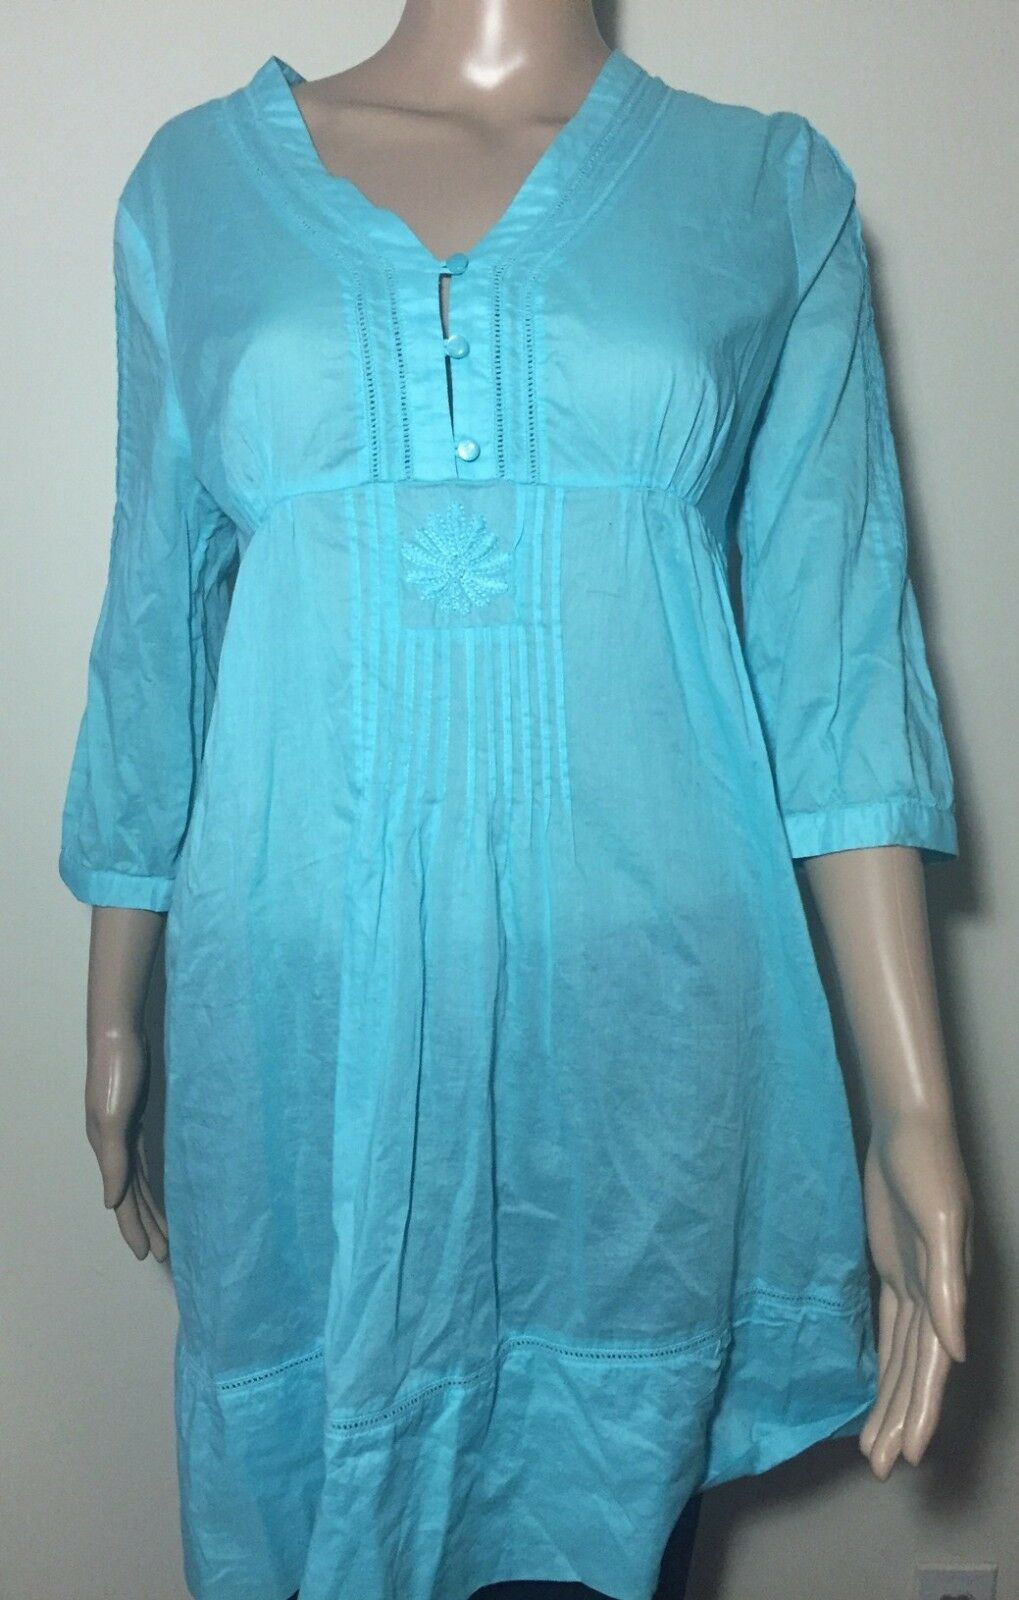 Lilly Pulitzer 100% Cotton Turquoise bluee Tunic Beach Dress